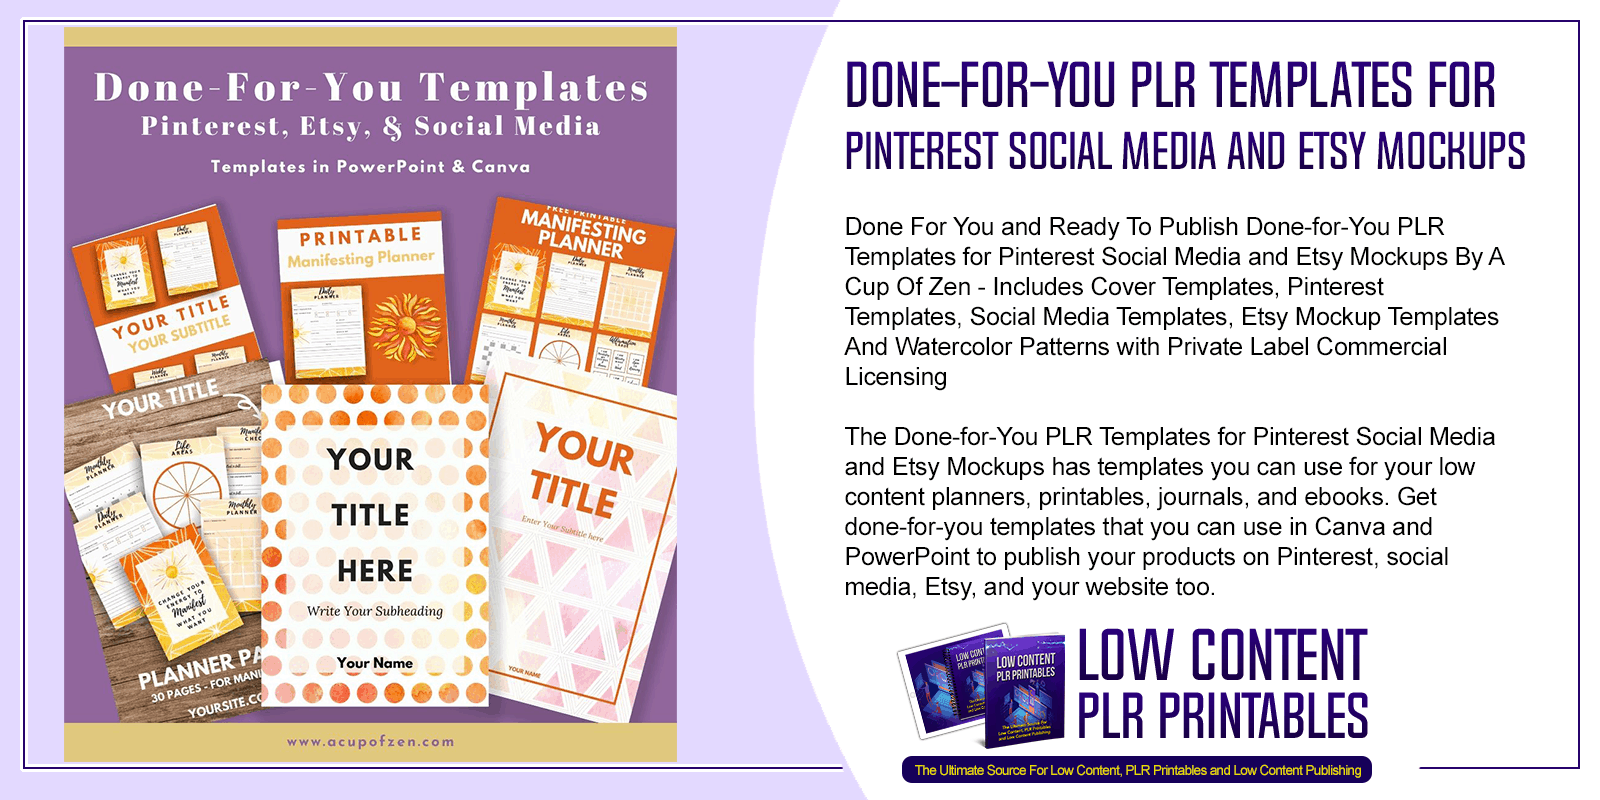 Done for You PLR Templates for Pinterest Social Media and Etsy Mockups